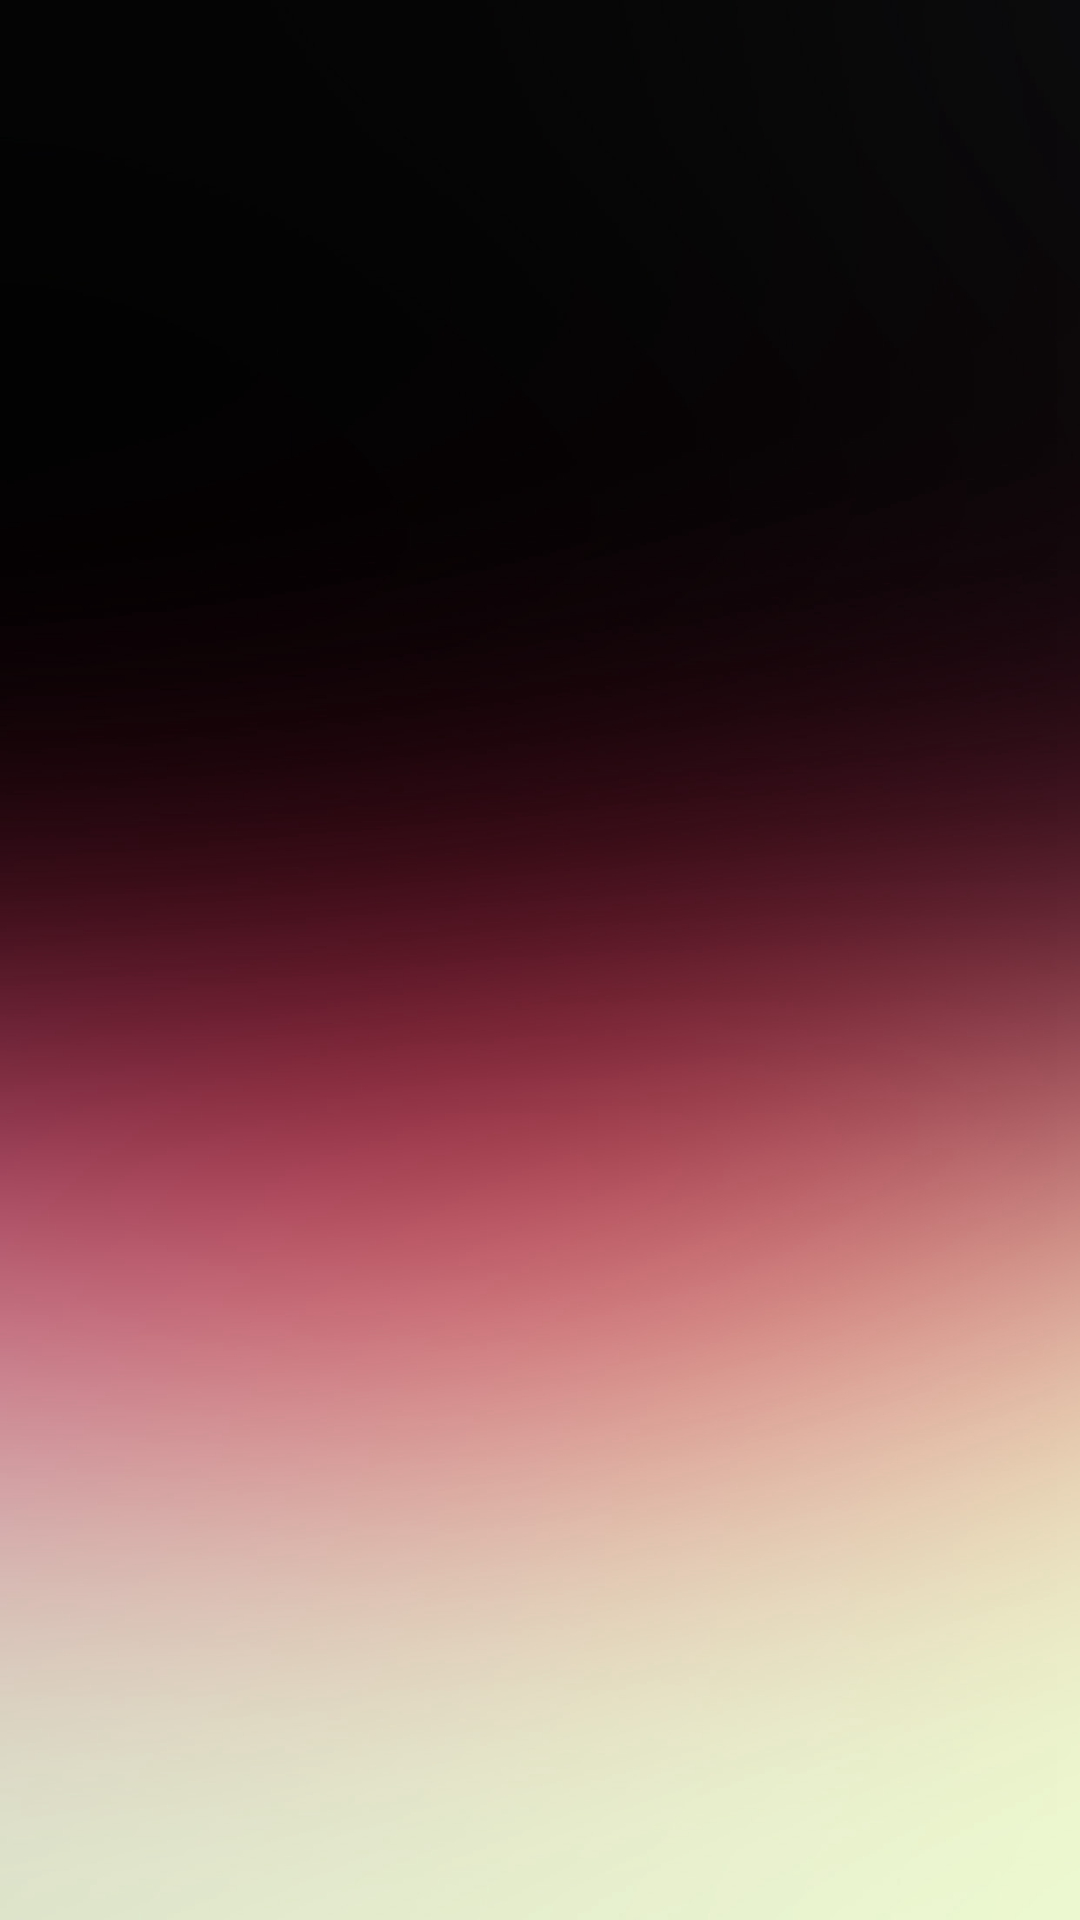 Dark-Red-Bokeh-Gradation-Blur-Pink-iPhone-wallpaper-wallpaper-wp4805771